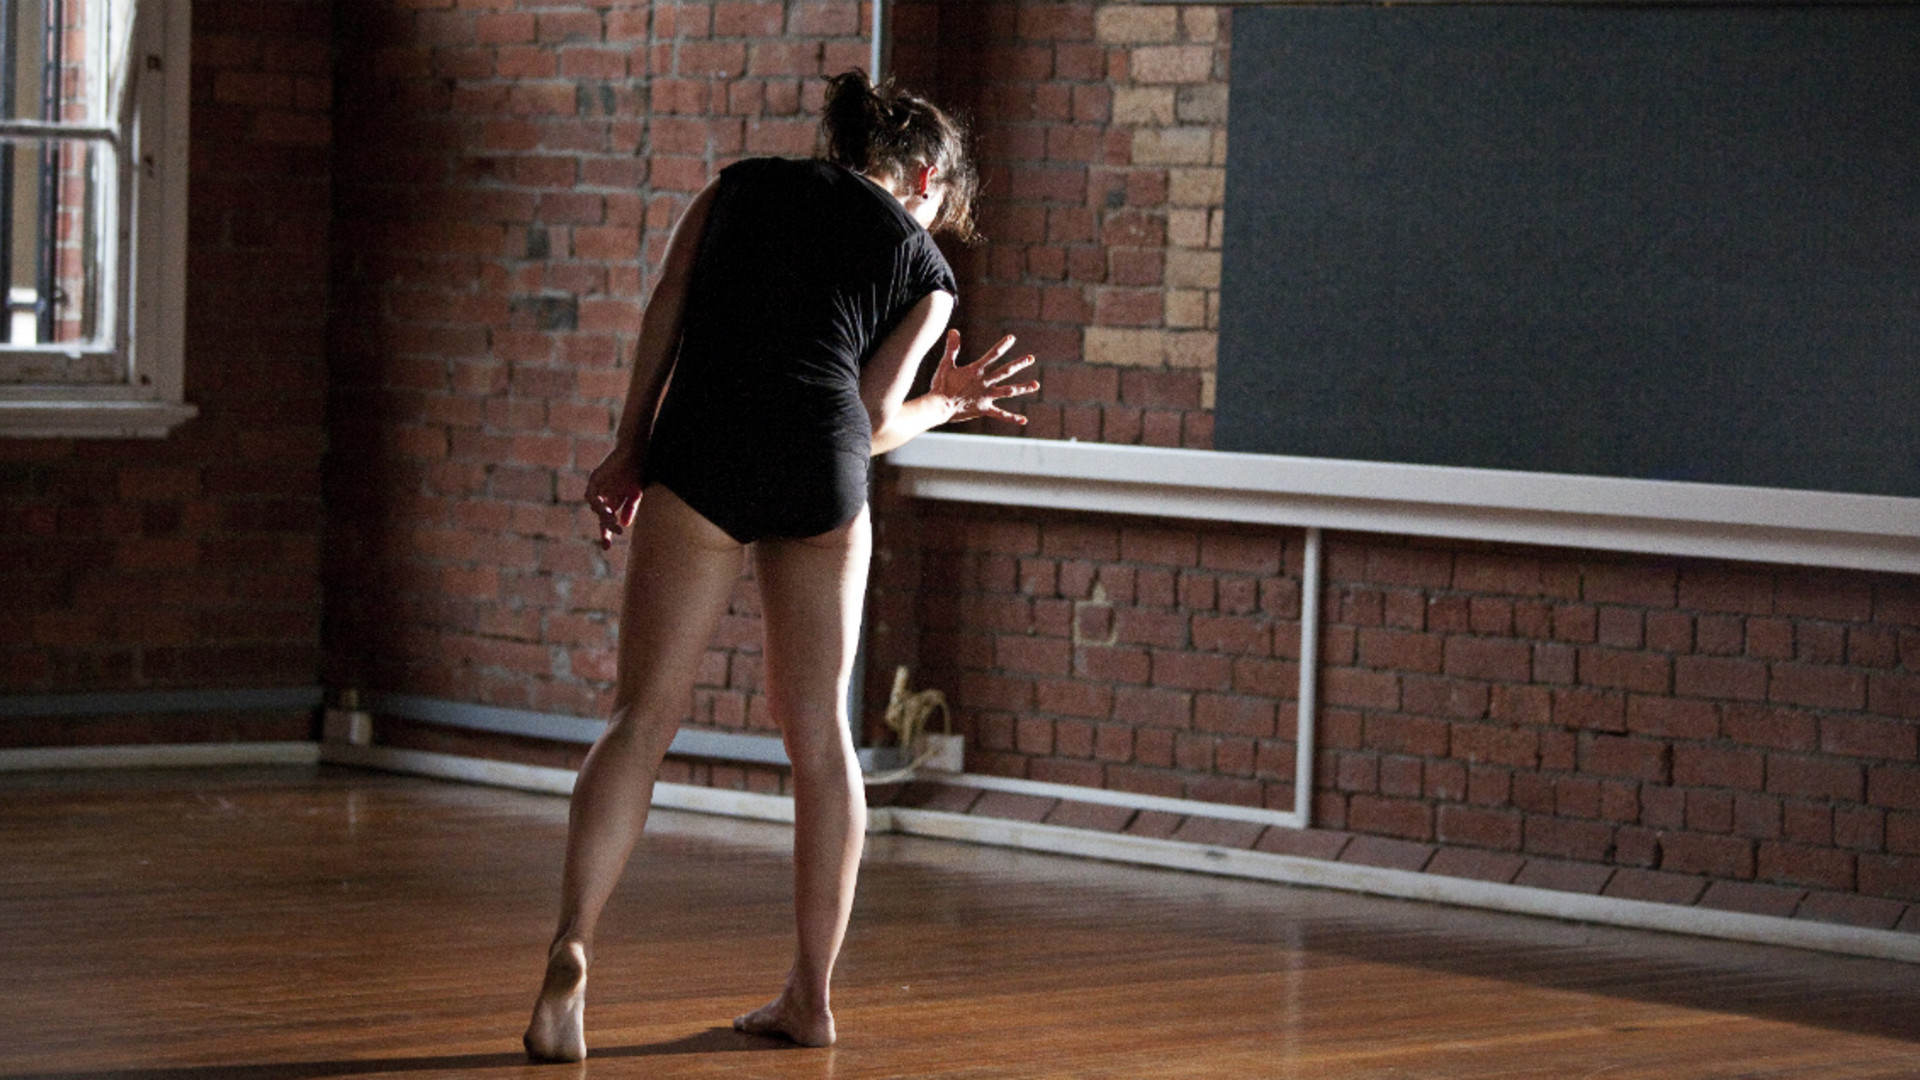 A woman, Deanne Butterworth, in a black leotard leans to her right with her arm bent at the elbow facing a blackboard on a brick wall